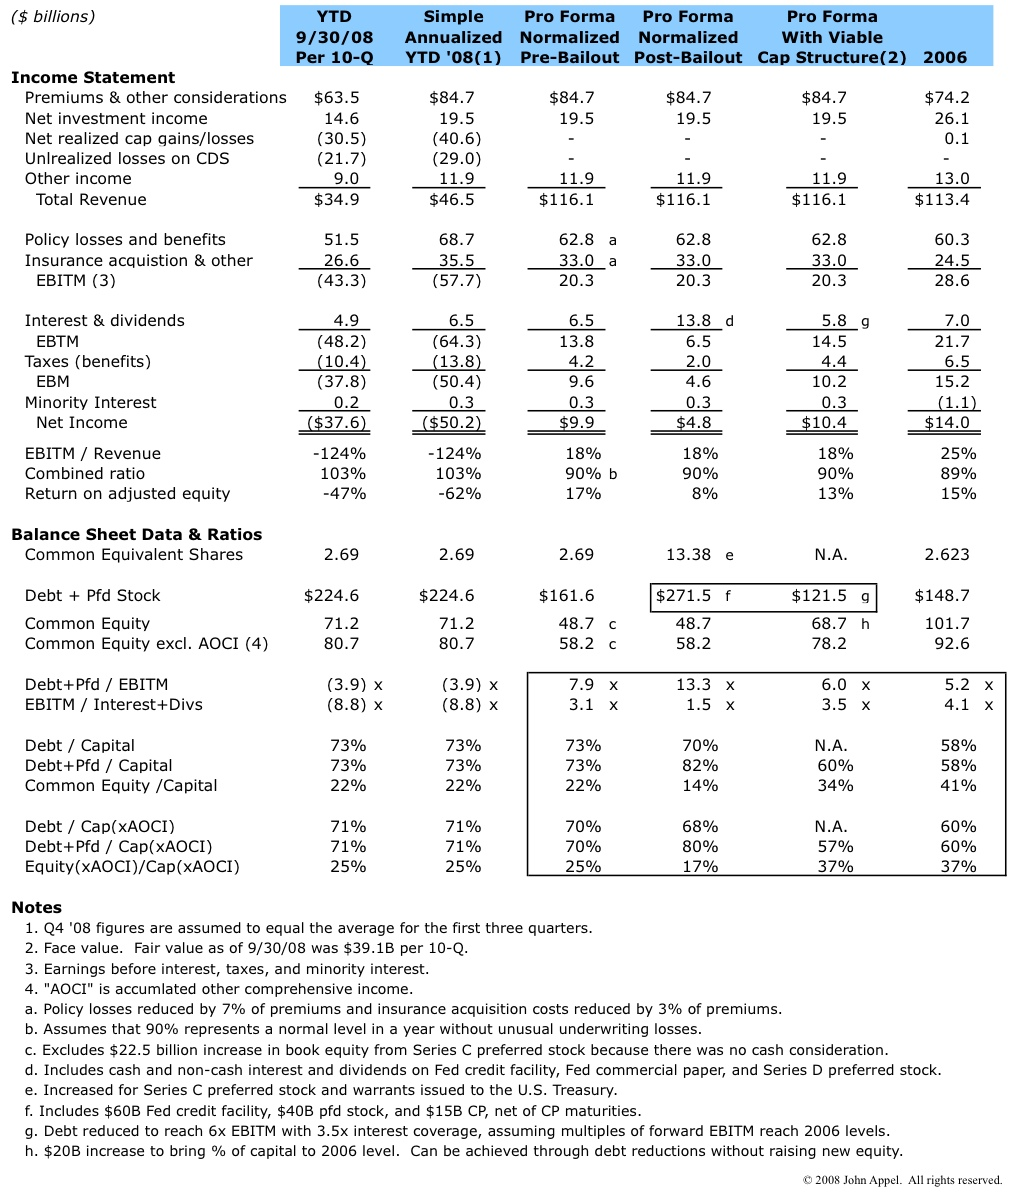 AIG Pro Forma PampL And Capitalization Ratios In Search Of